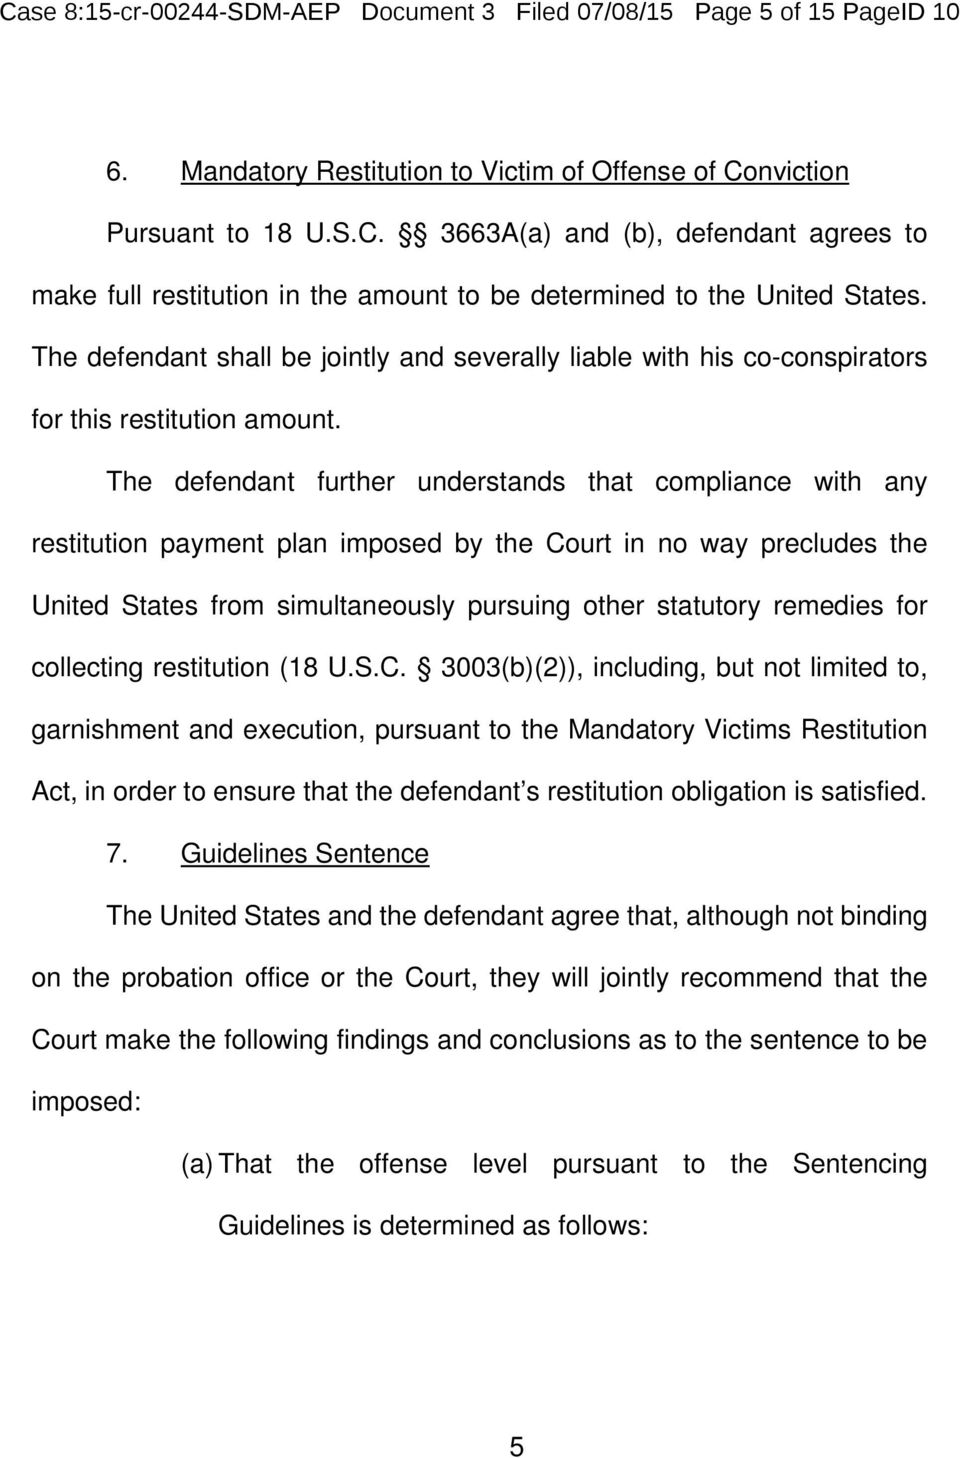 The defendant further understands that compliance with any restitution payment plan imposed by the Court in no way precludes the United States from simultaneously pursuing other statutory remedies